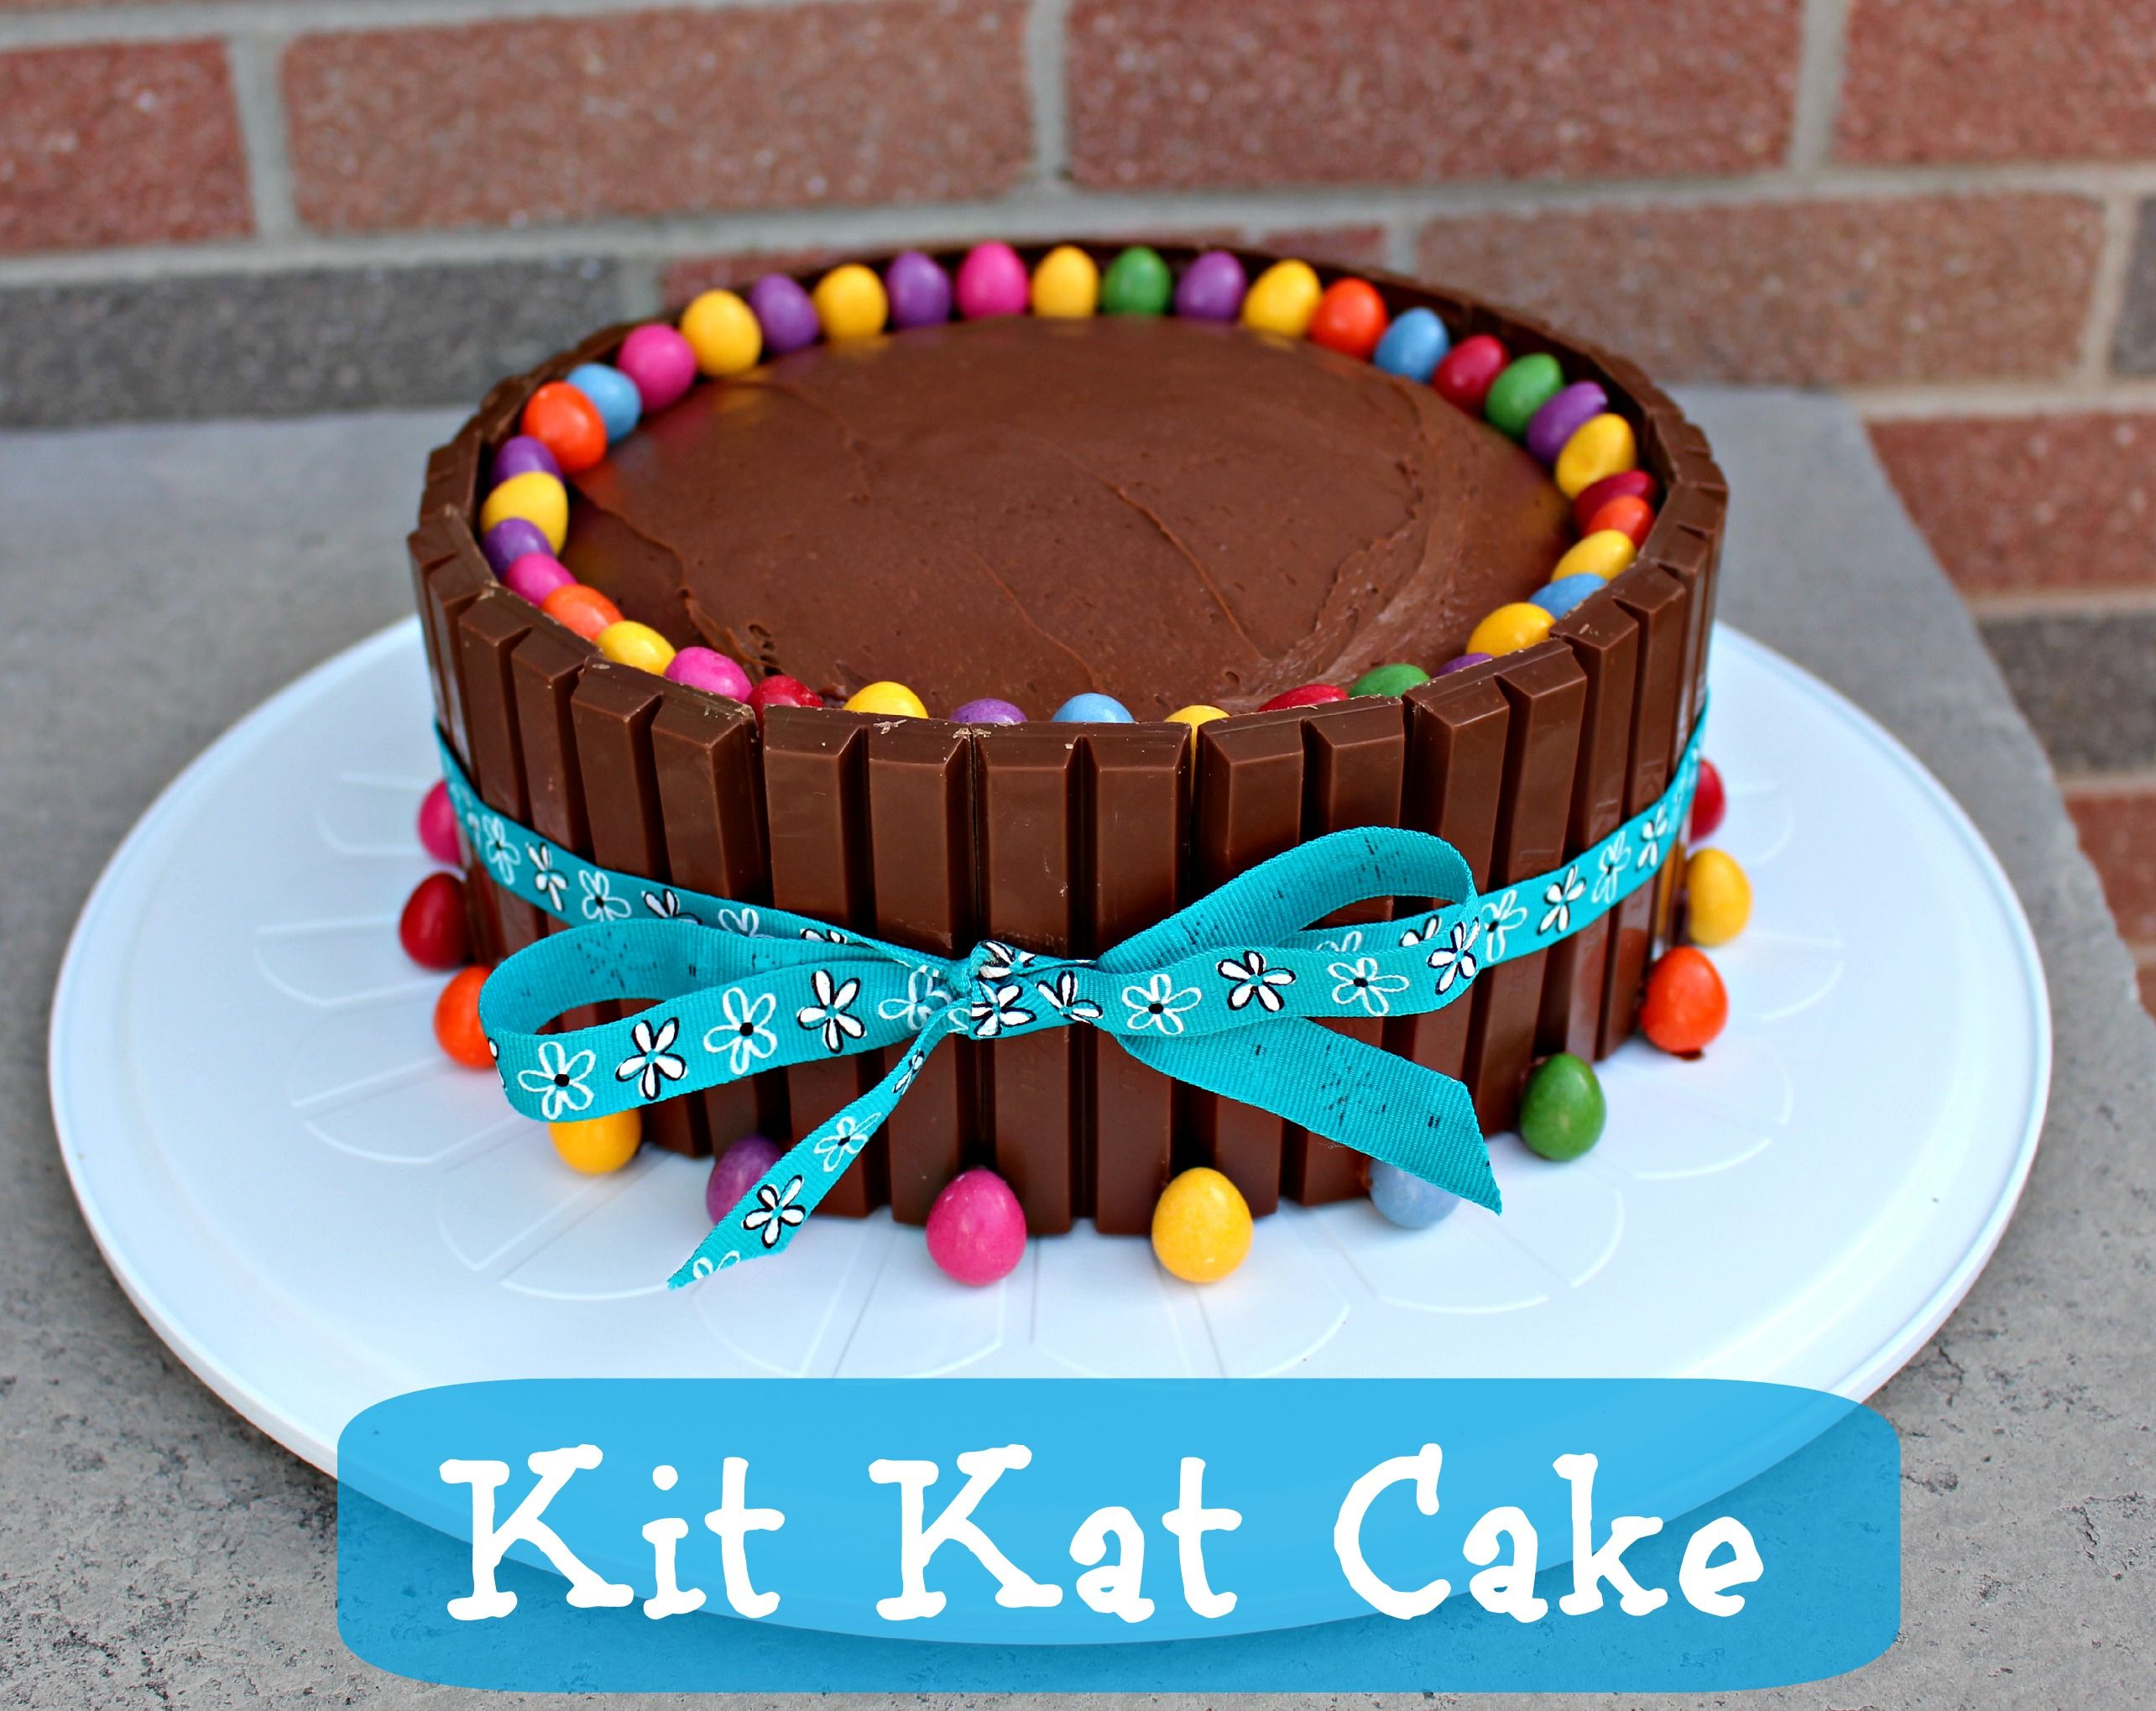 Fantastic Kit Kat Cake Recipe With Images Kit Kat Cake Easy Birthday Funny Birthday Cards Online Bapapcheapnameinfo